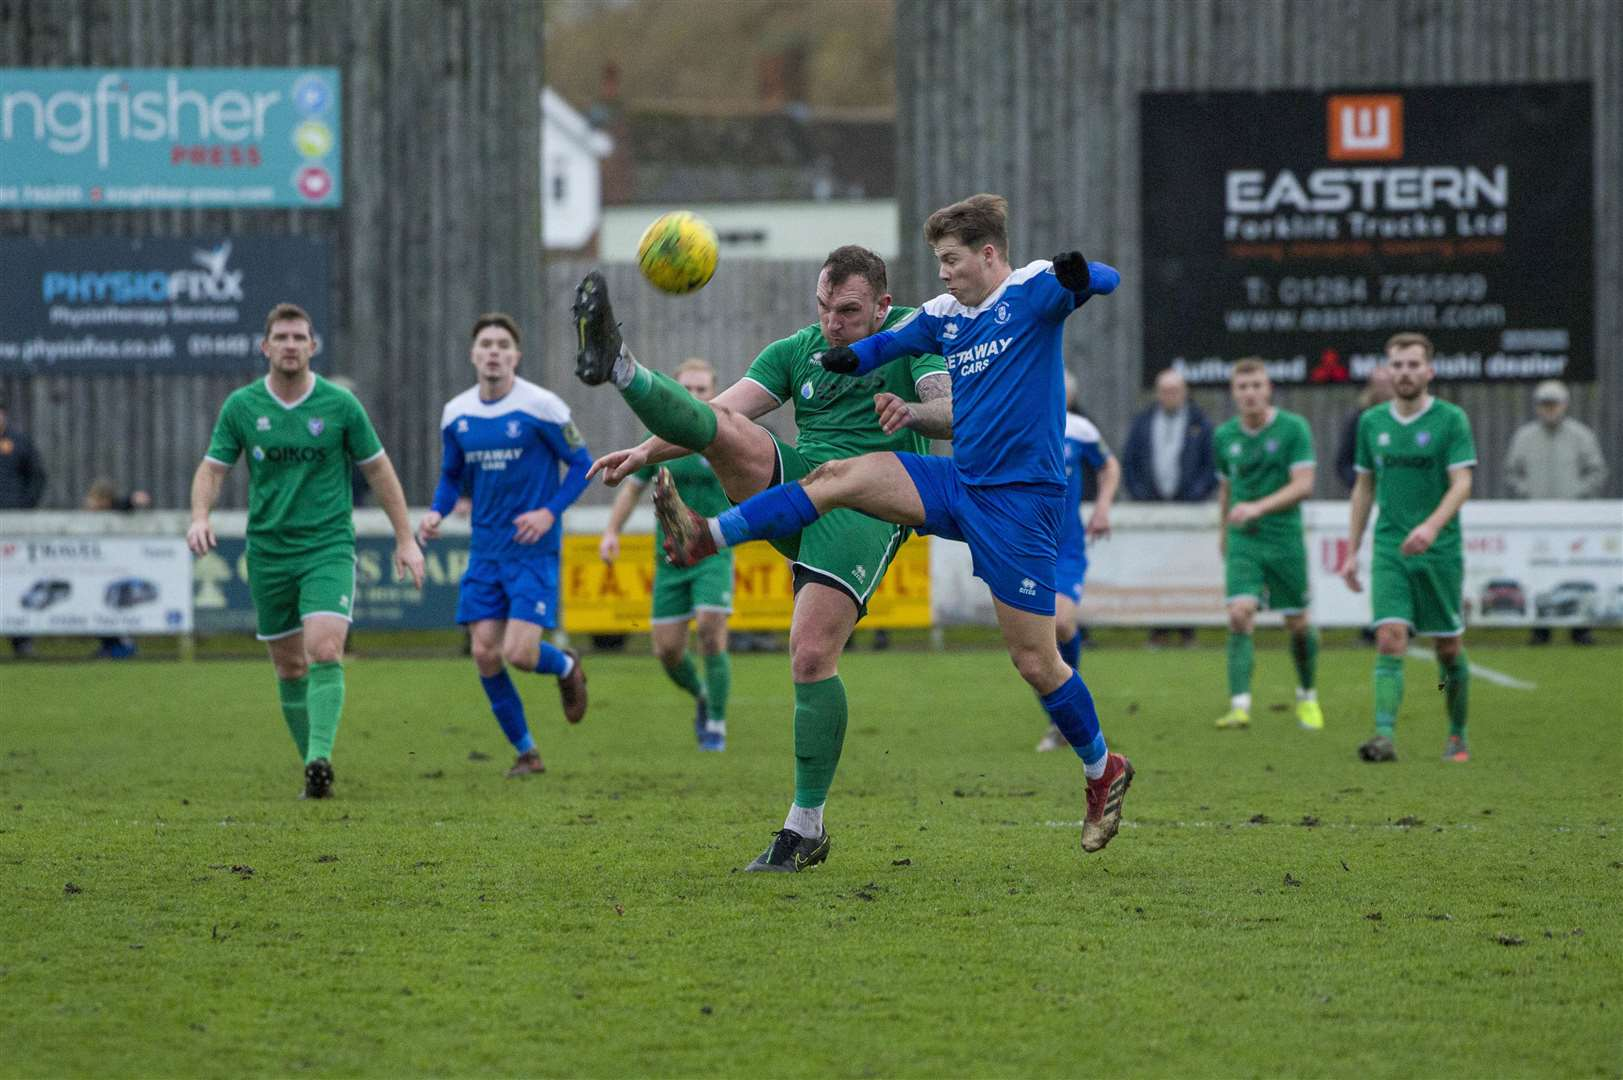 Football - Bury Town v Canvey Island - Jake Chambers Shaw Beaten to the Ball- Location - Ram Meadow - Picture - Neil Dady. (25916186)